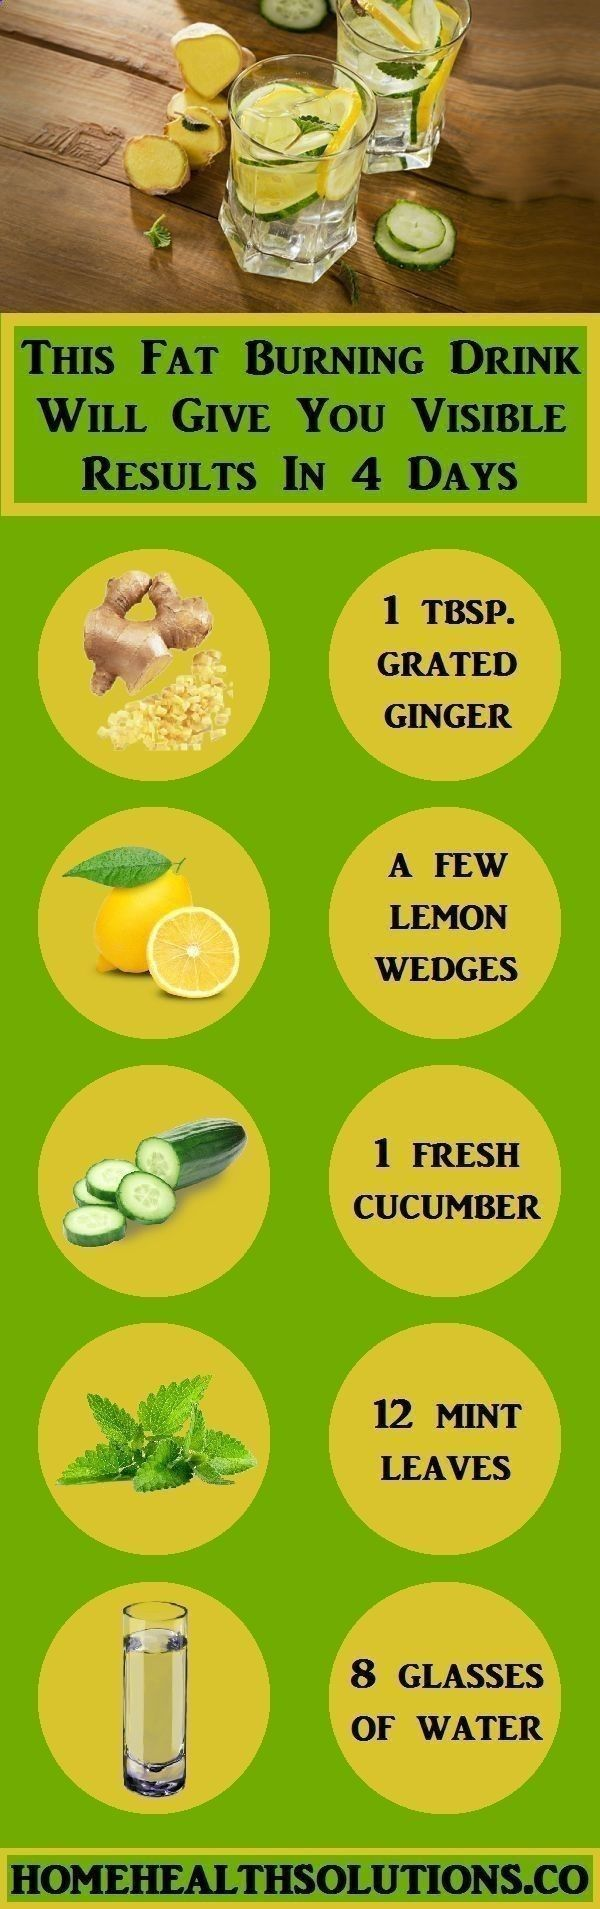 Foods that burn fat in a day image 1